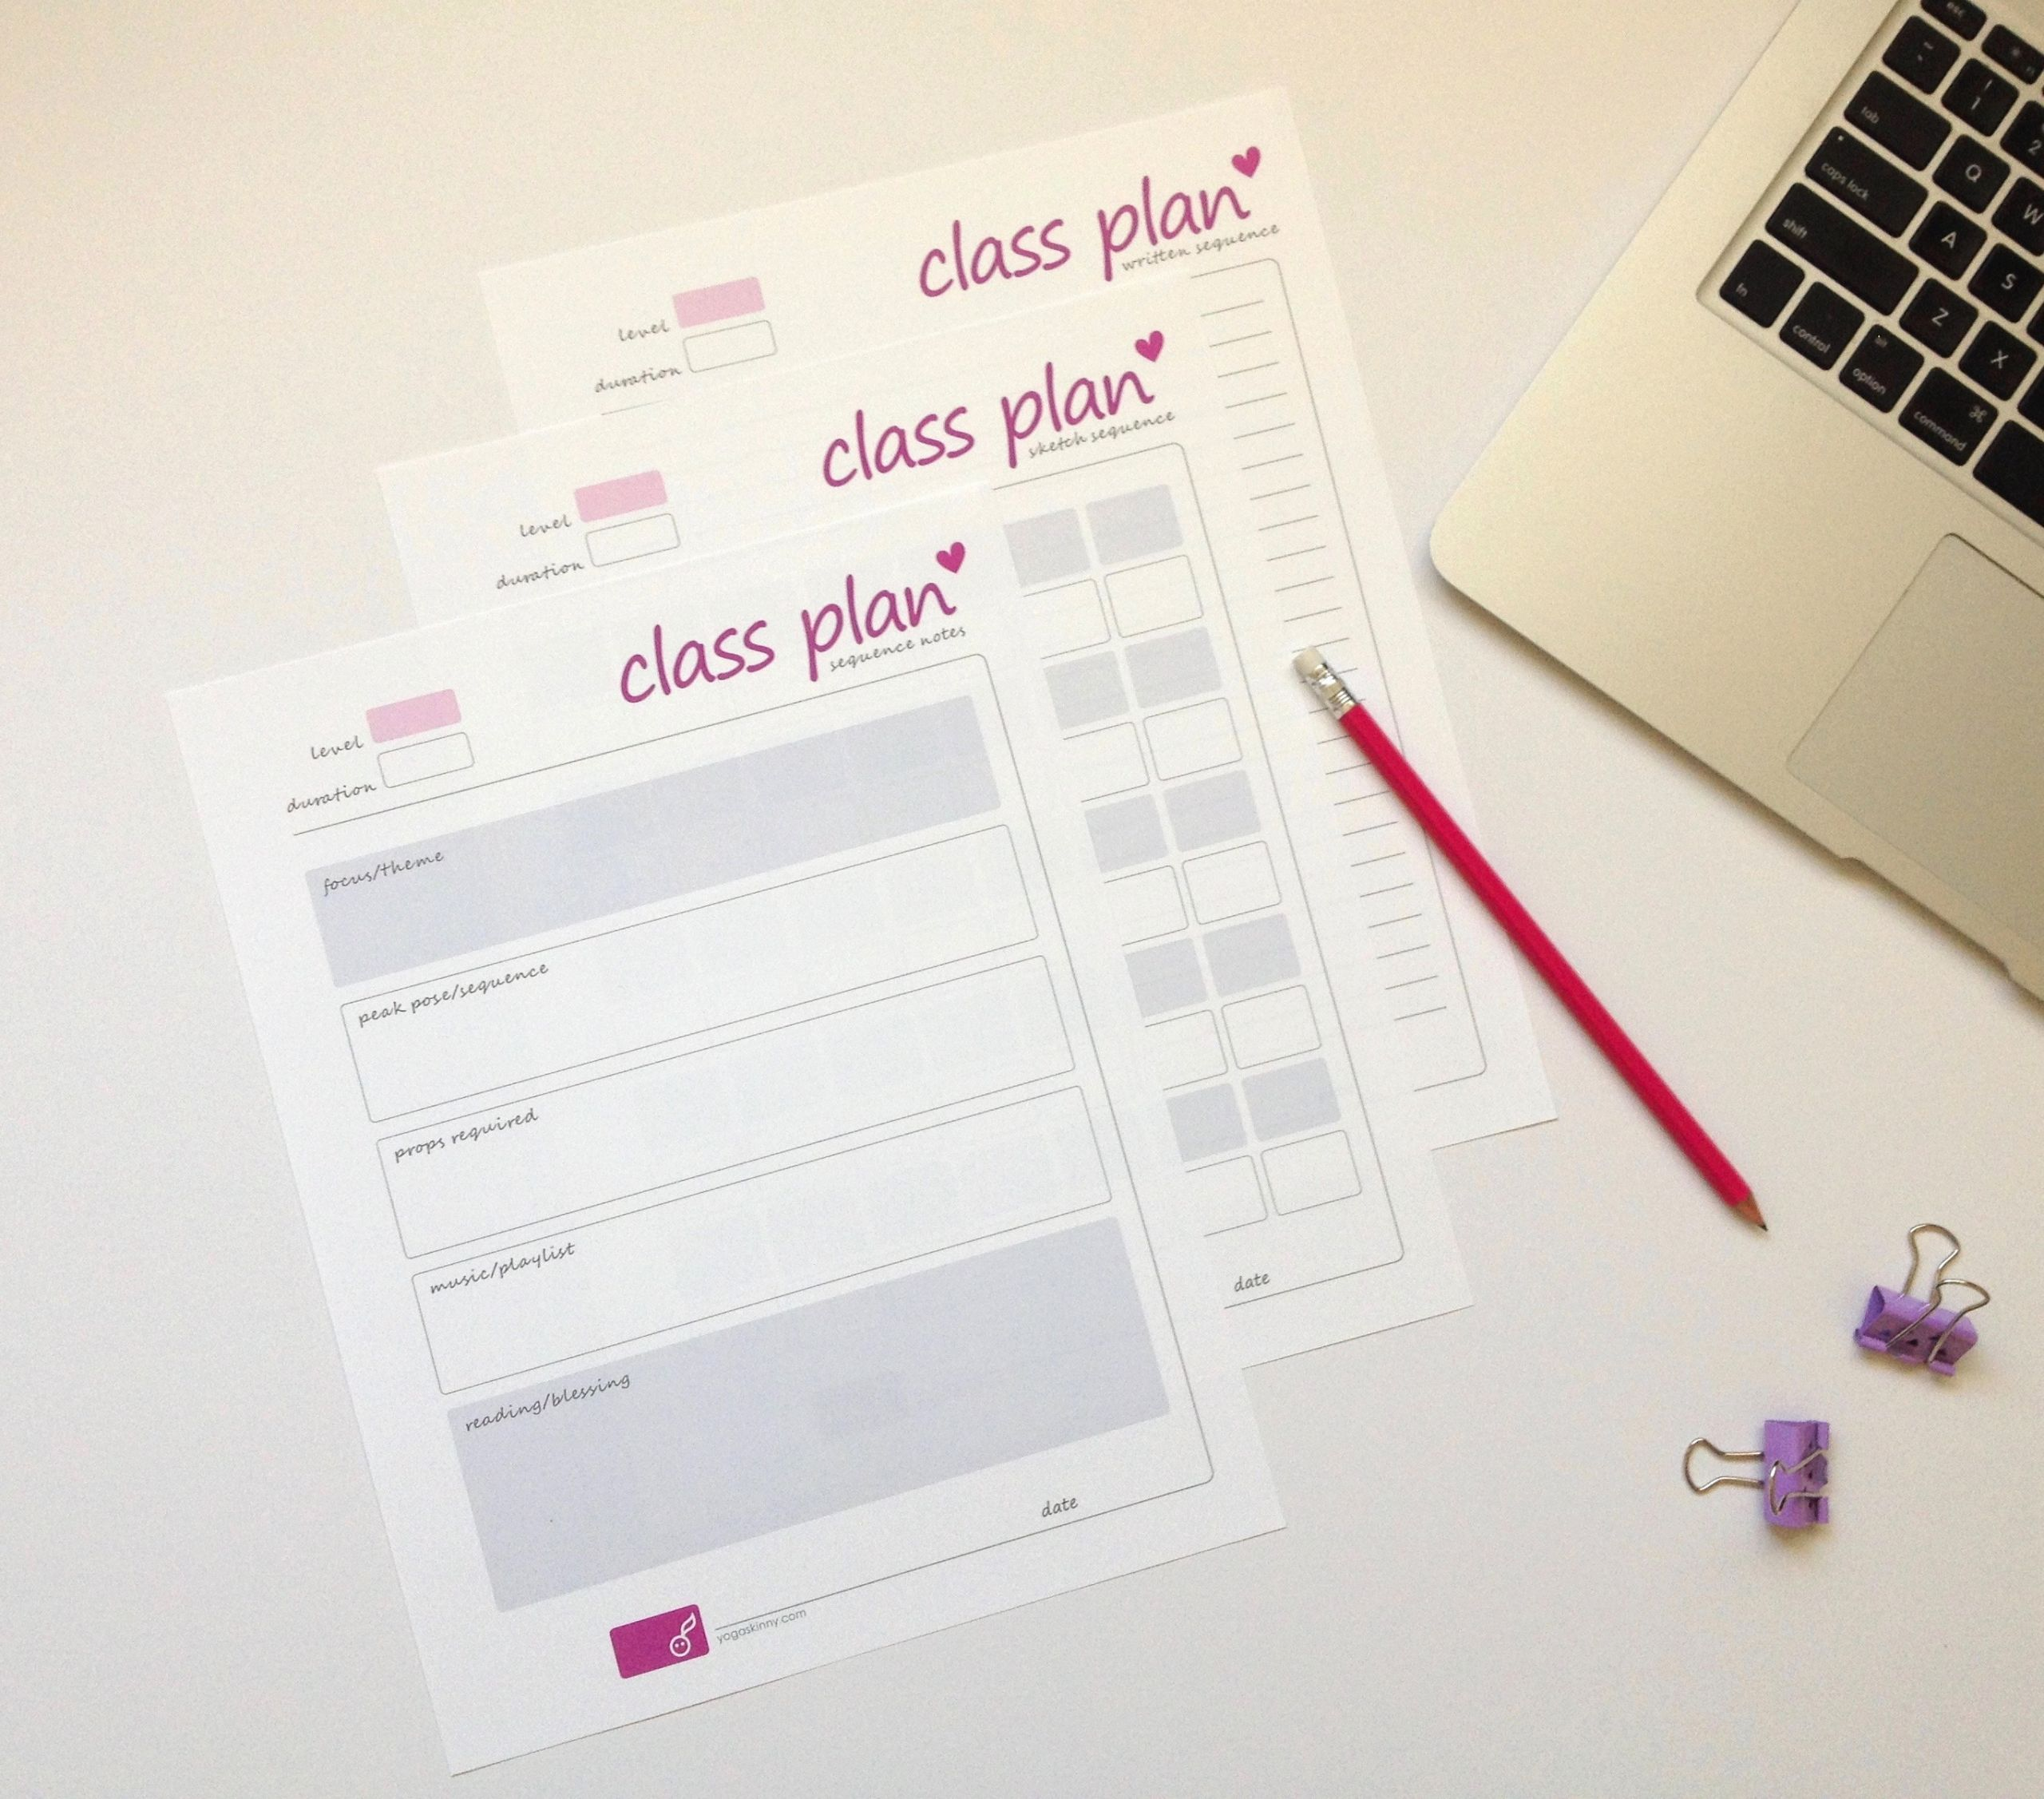 Yoga Class Planning Template Luxury Yoga Class Planning for Yoga Teachers